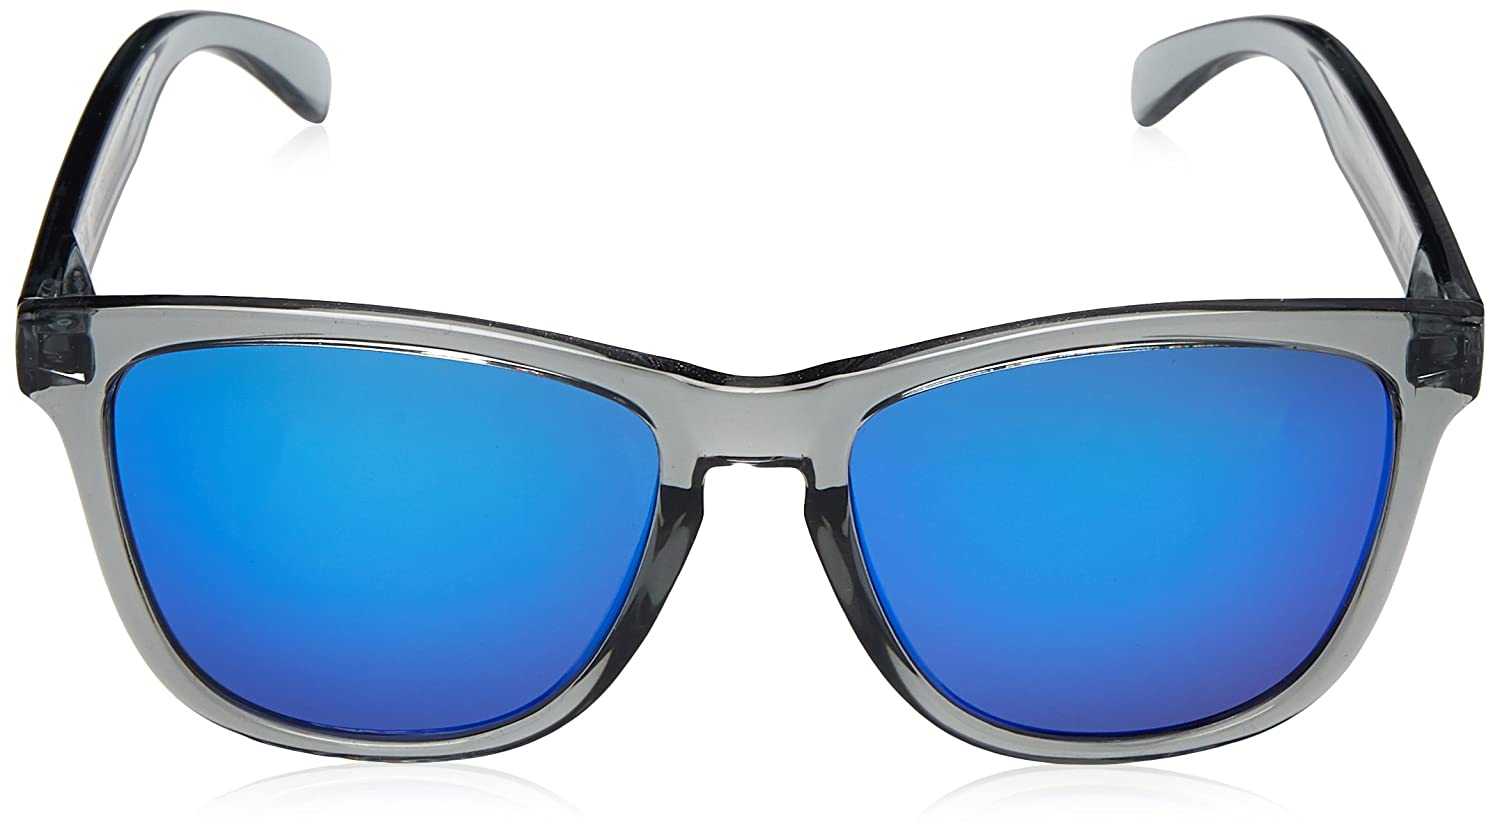 NORTHWEEK Regular, Gafas de Sol Unisex, Bright Grey/Blue Polarized, 45: Amazon.es: Ropa y accesorios